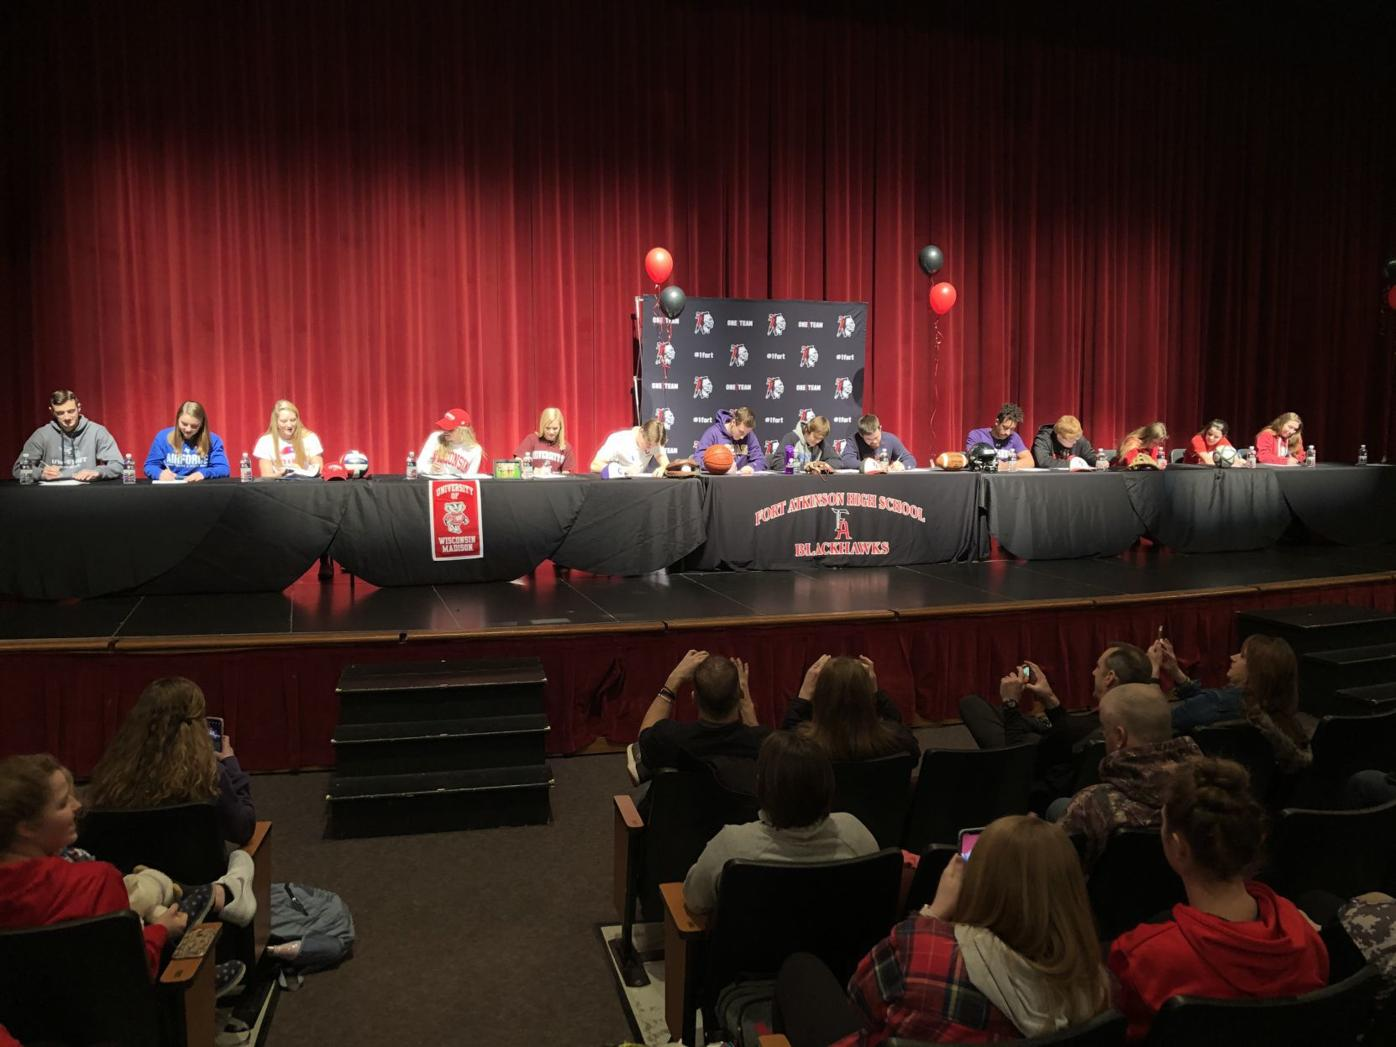 Fort Atkinson recognizes 15 athletes